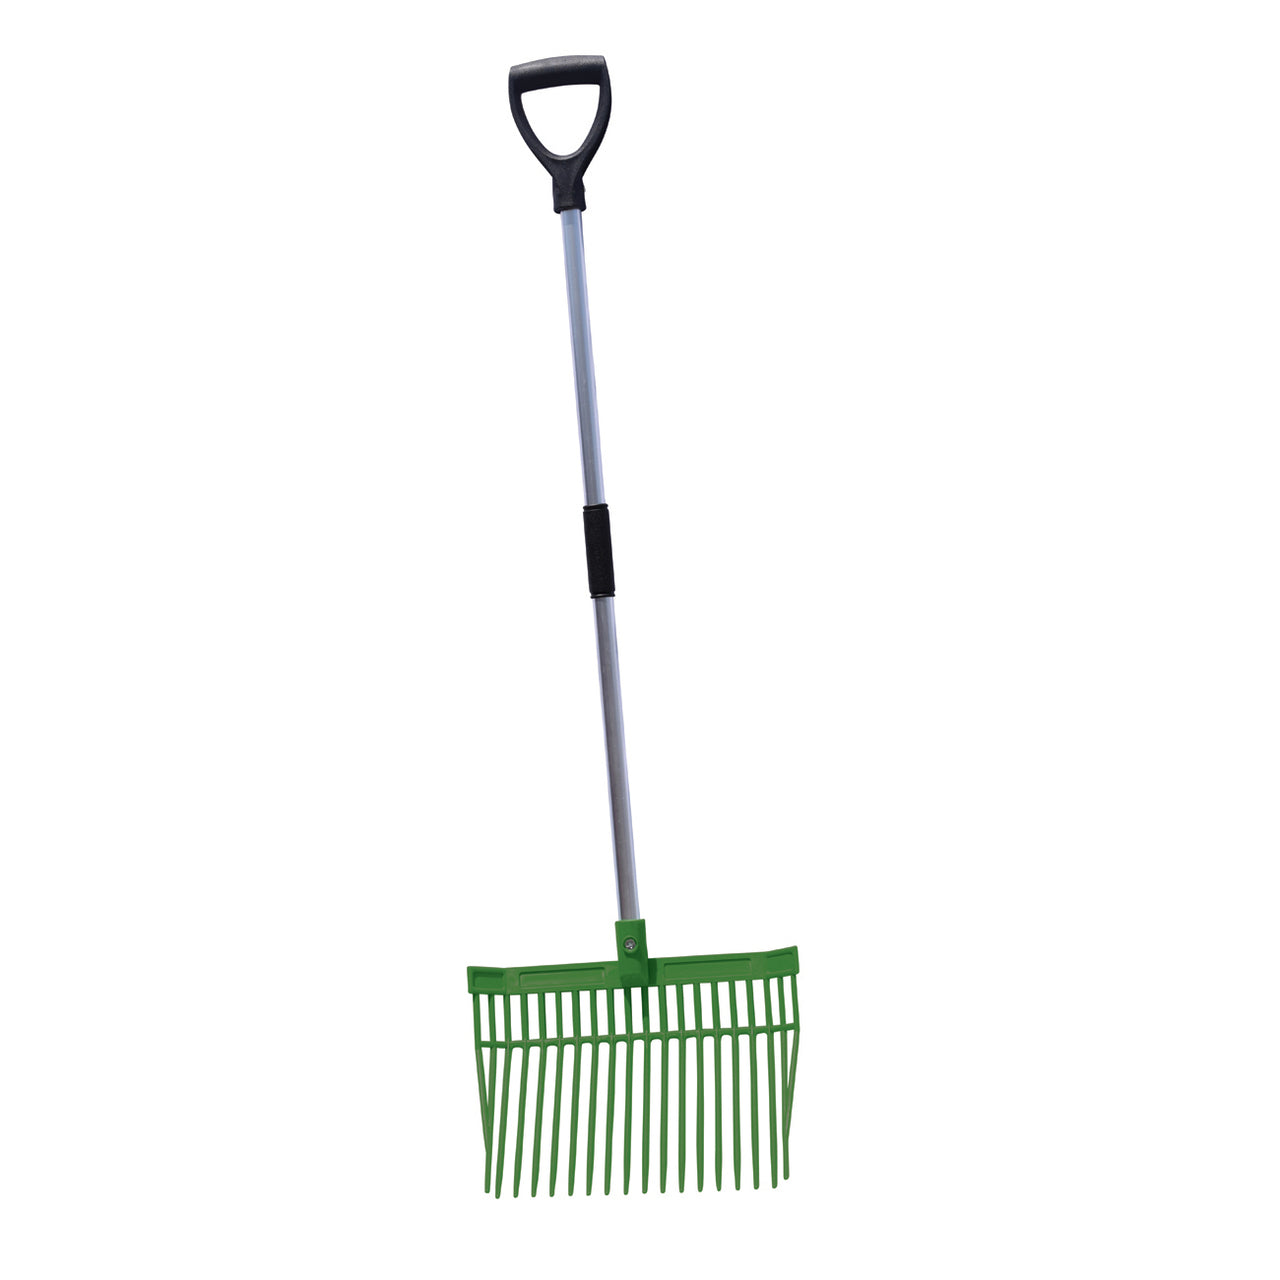 Tuff Stuff Hd Square Barn Fork (Green) - Shovels Rakes Manure Scoops Forks Stirrer Twine Cutter Tuff Stuff - Canada